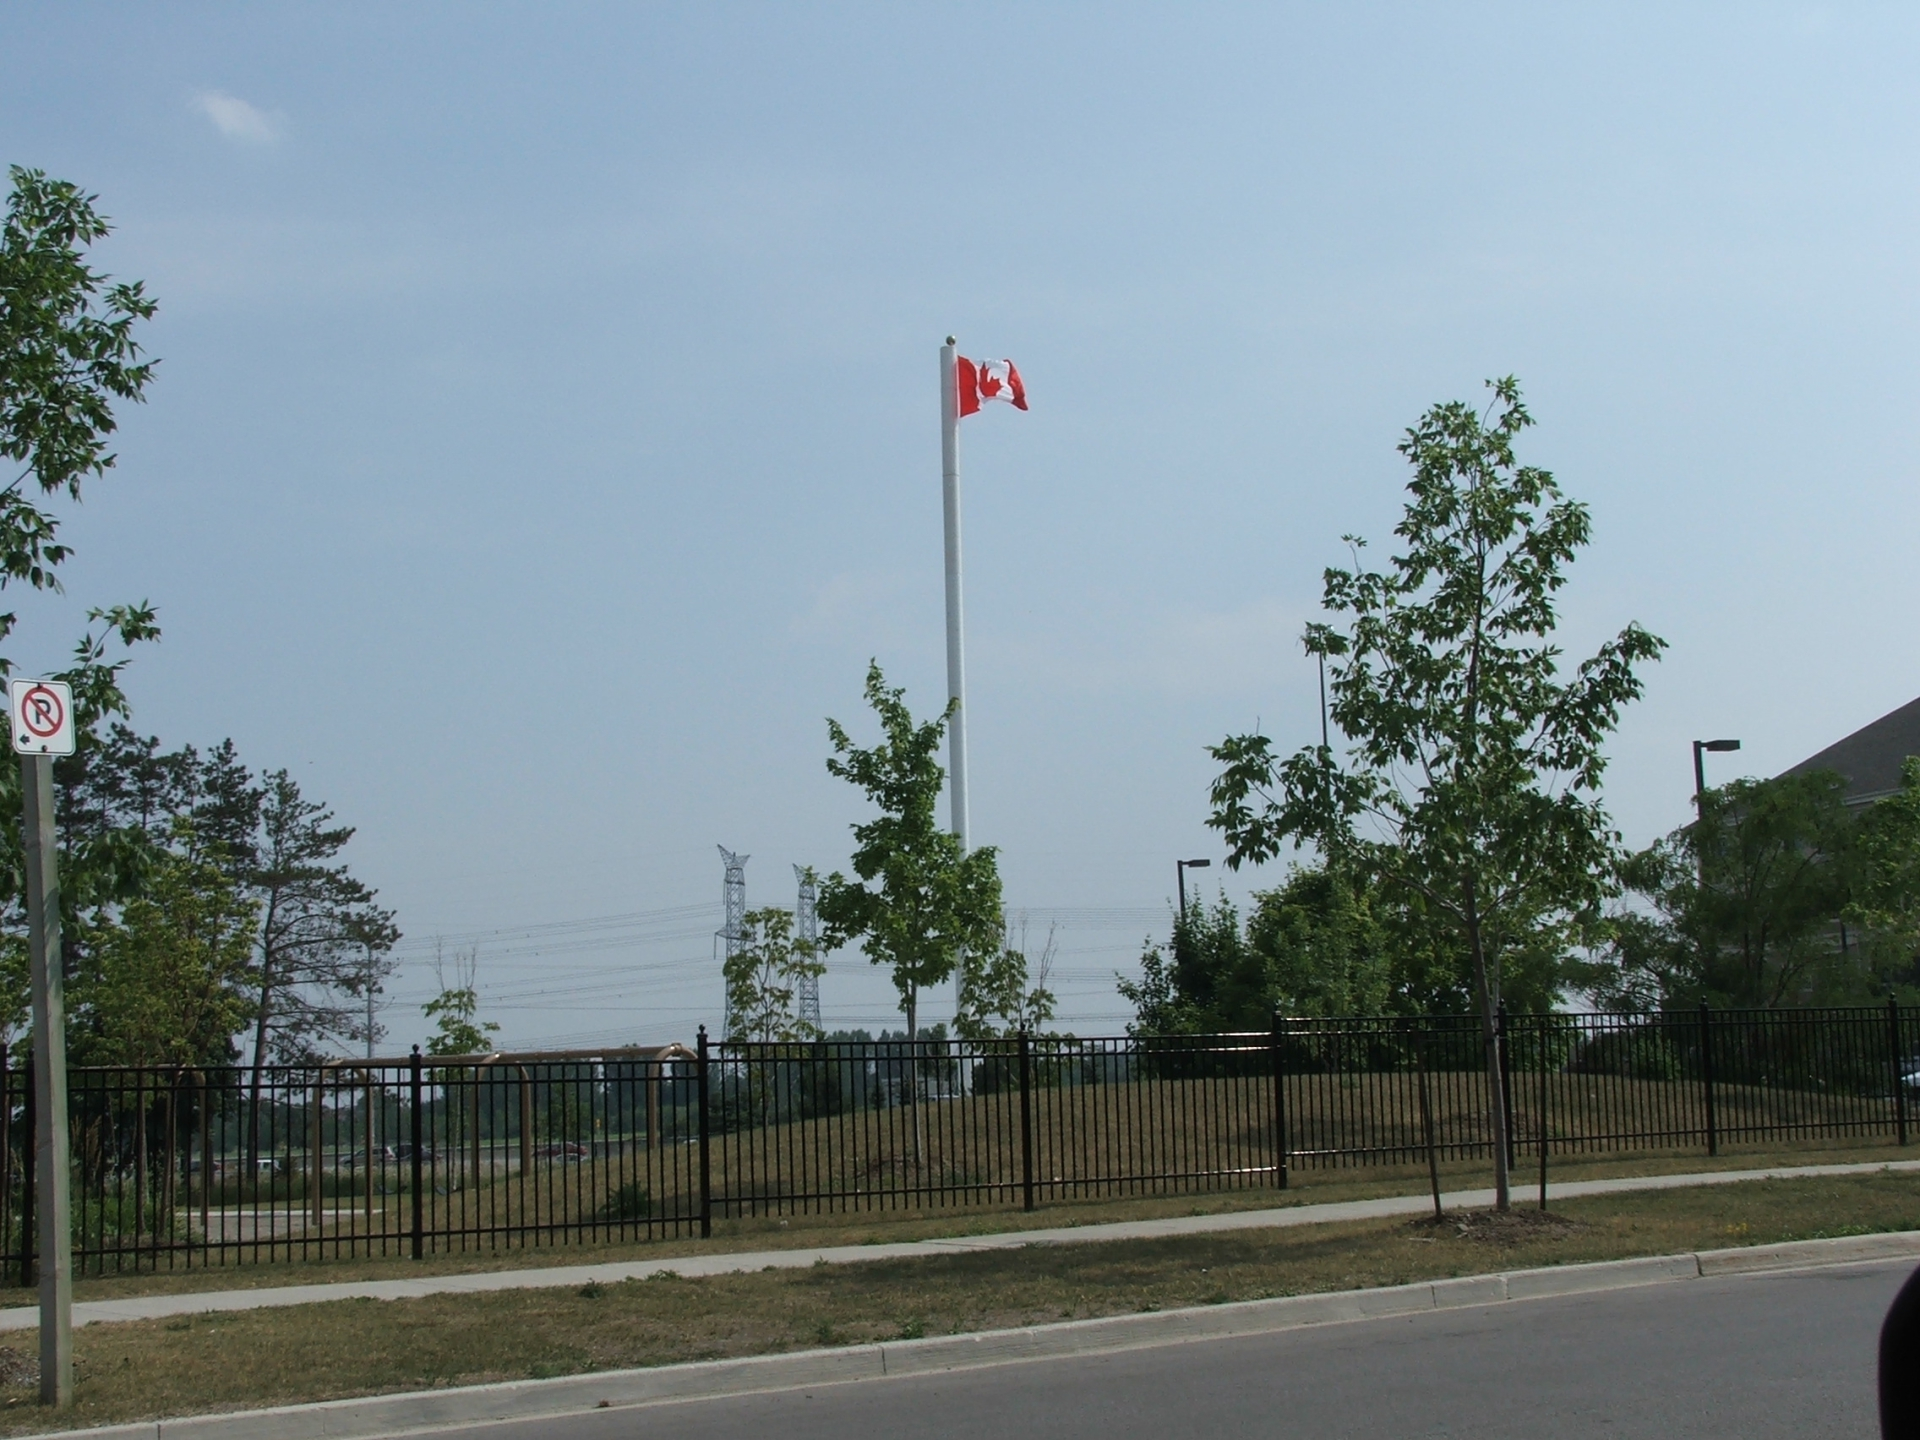 35m-Flagpole-in-a-6X6-area-1